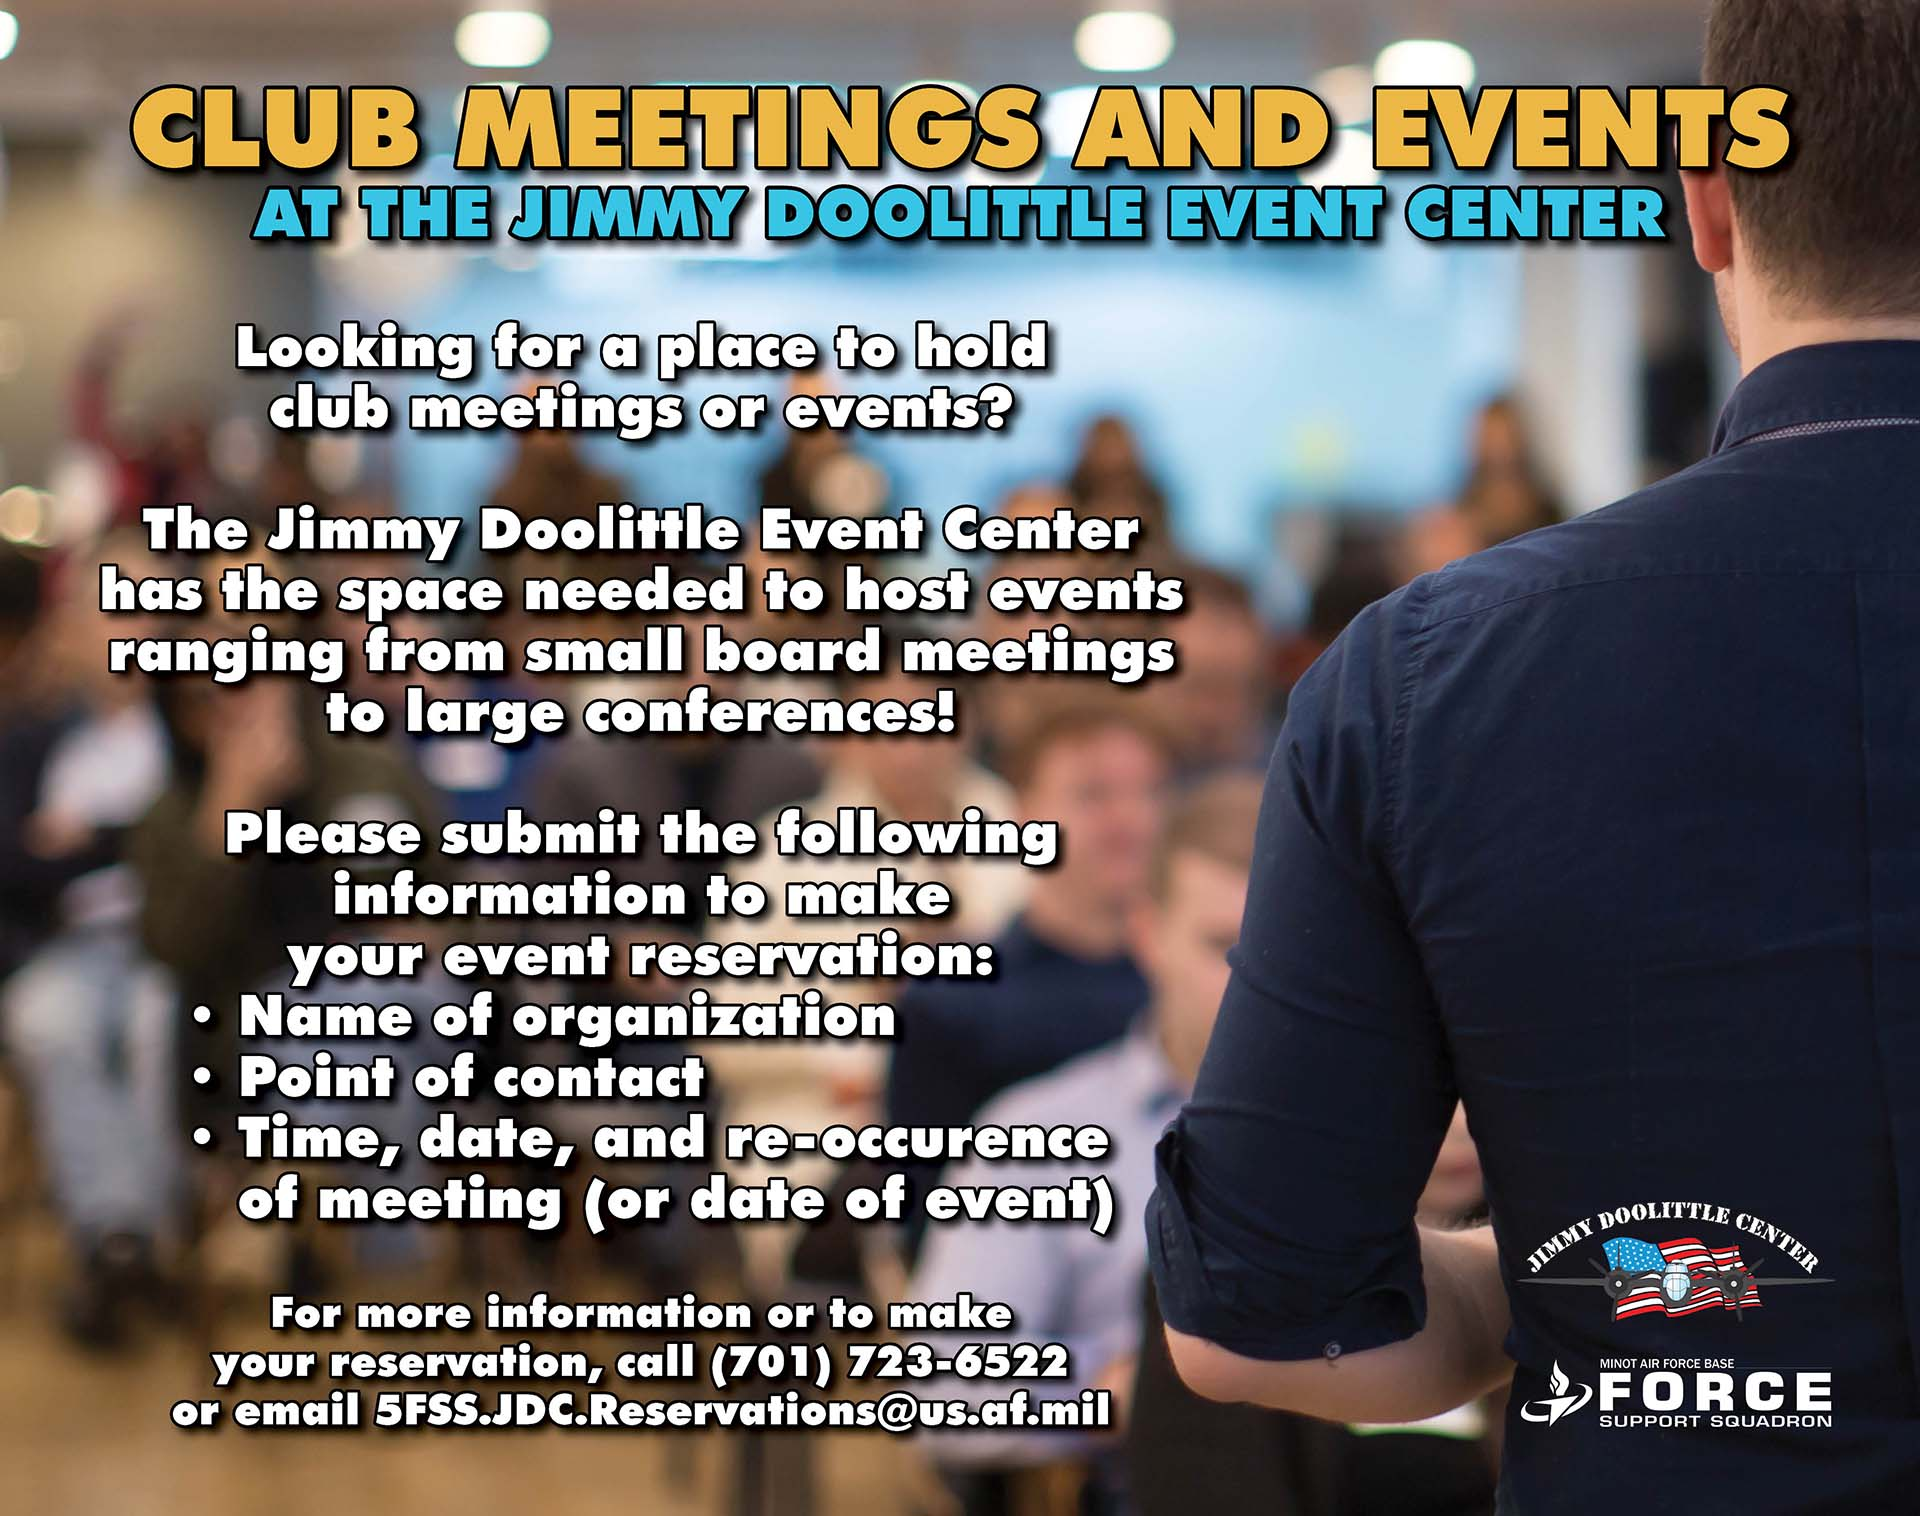 JDC - Club Meetings and Events